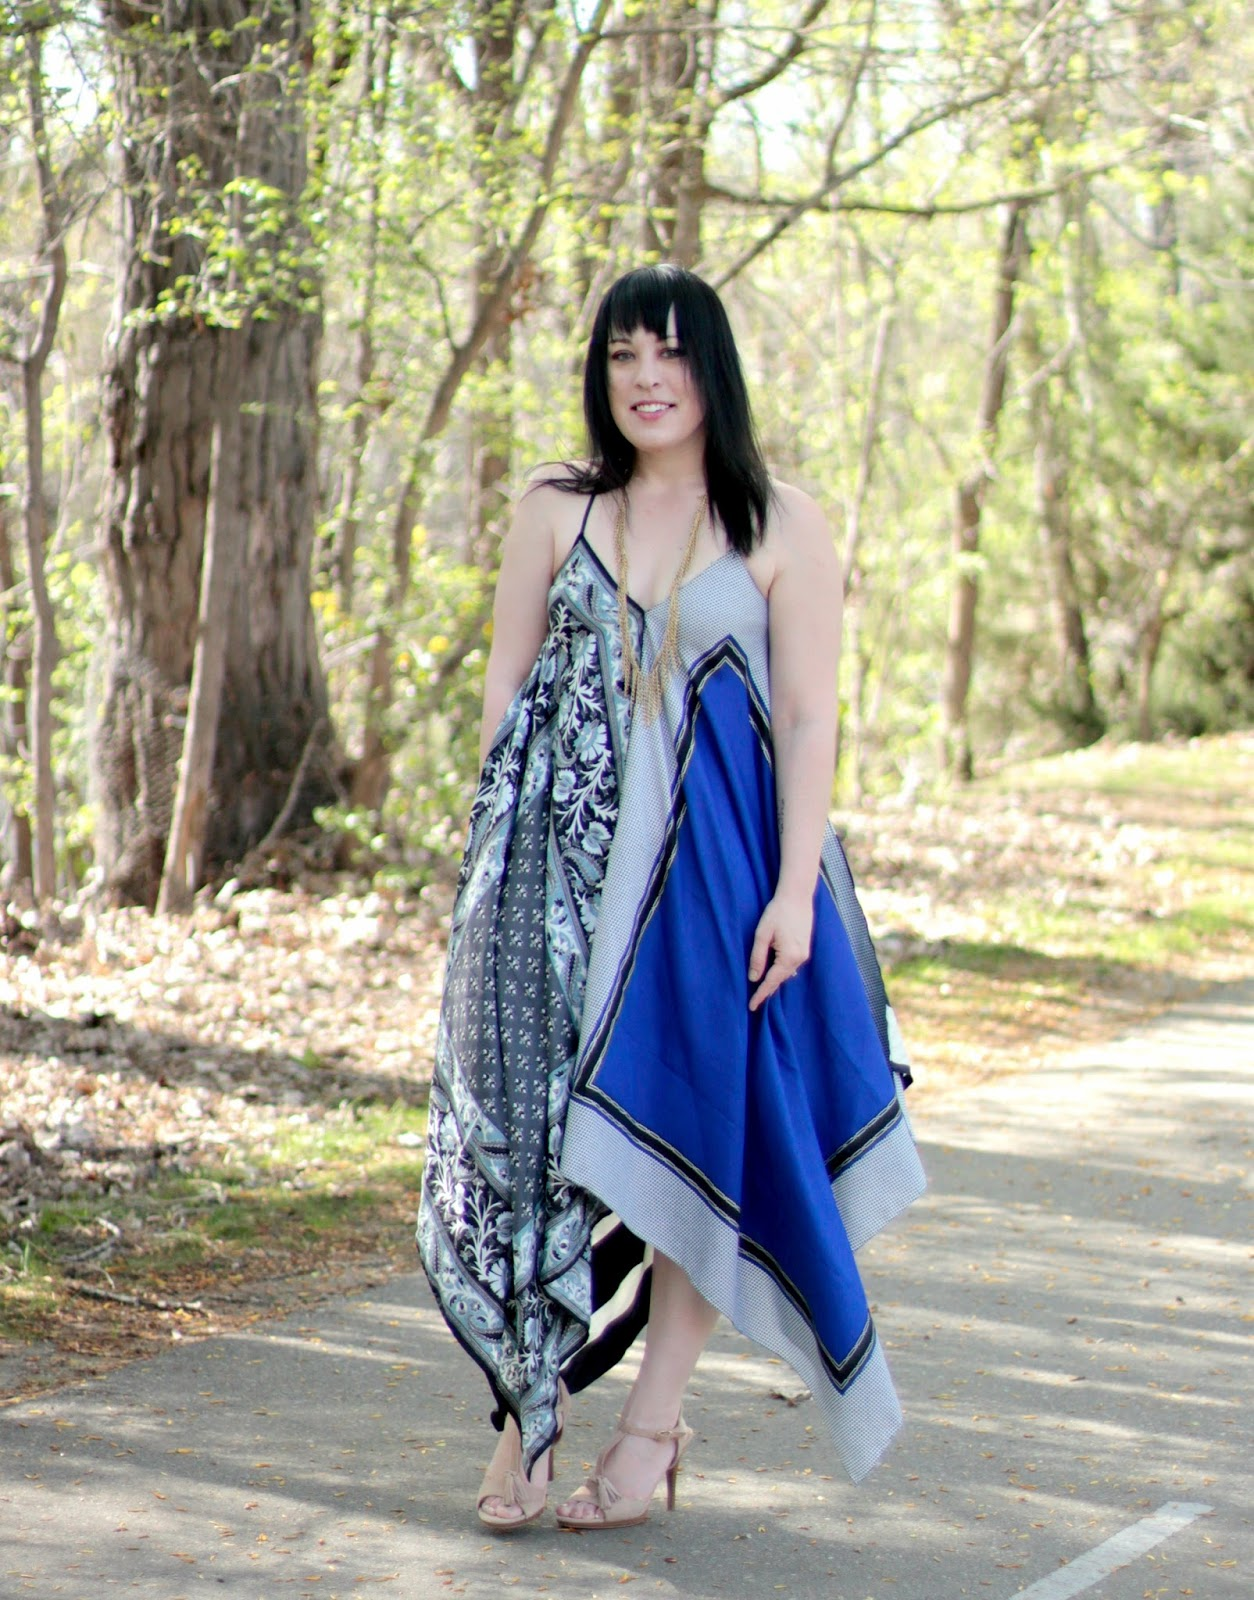 DIY: Make your own boho dress for summer!